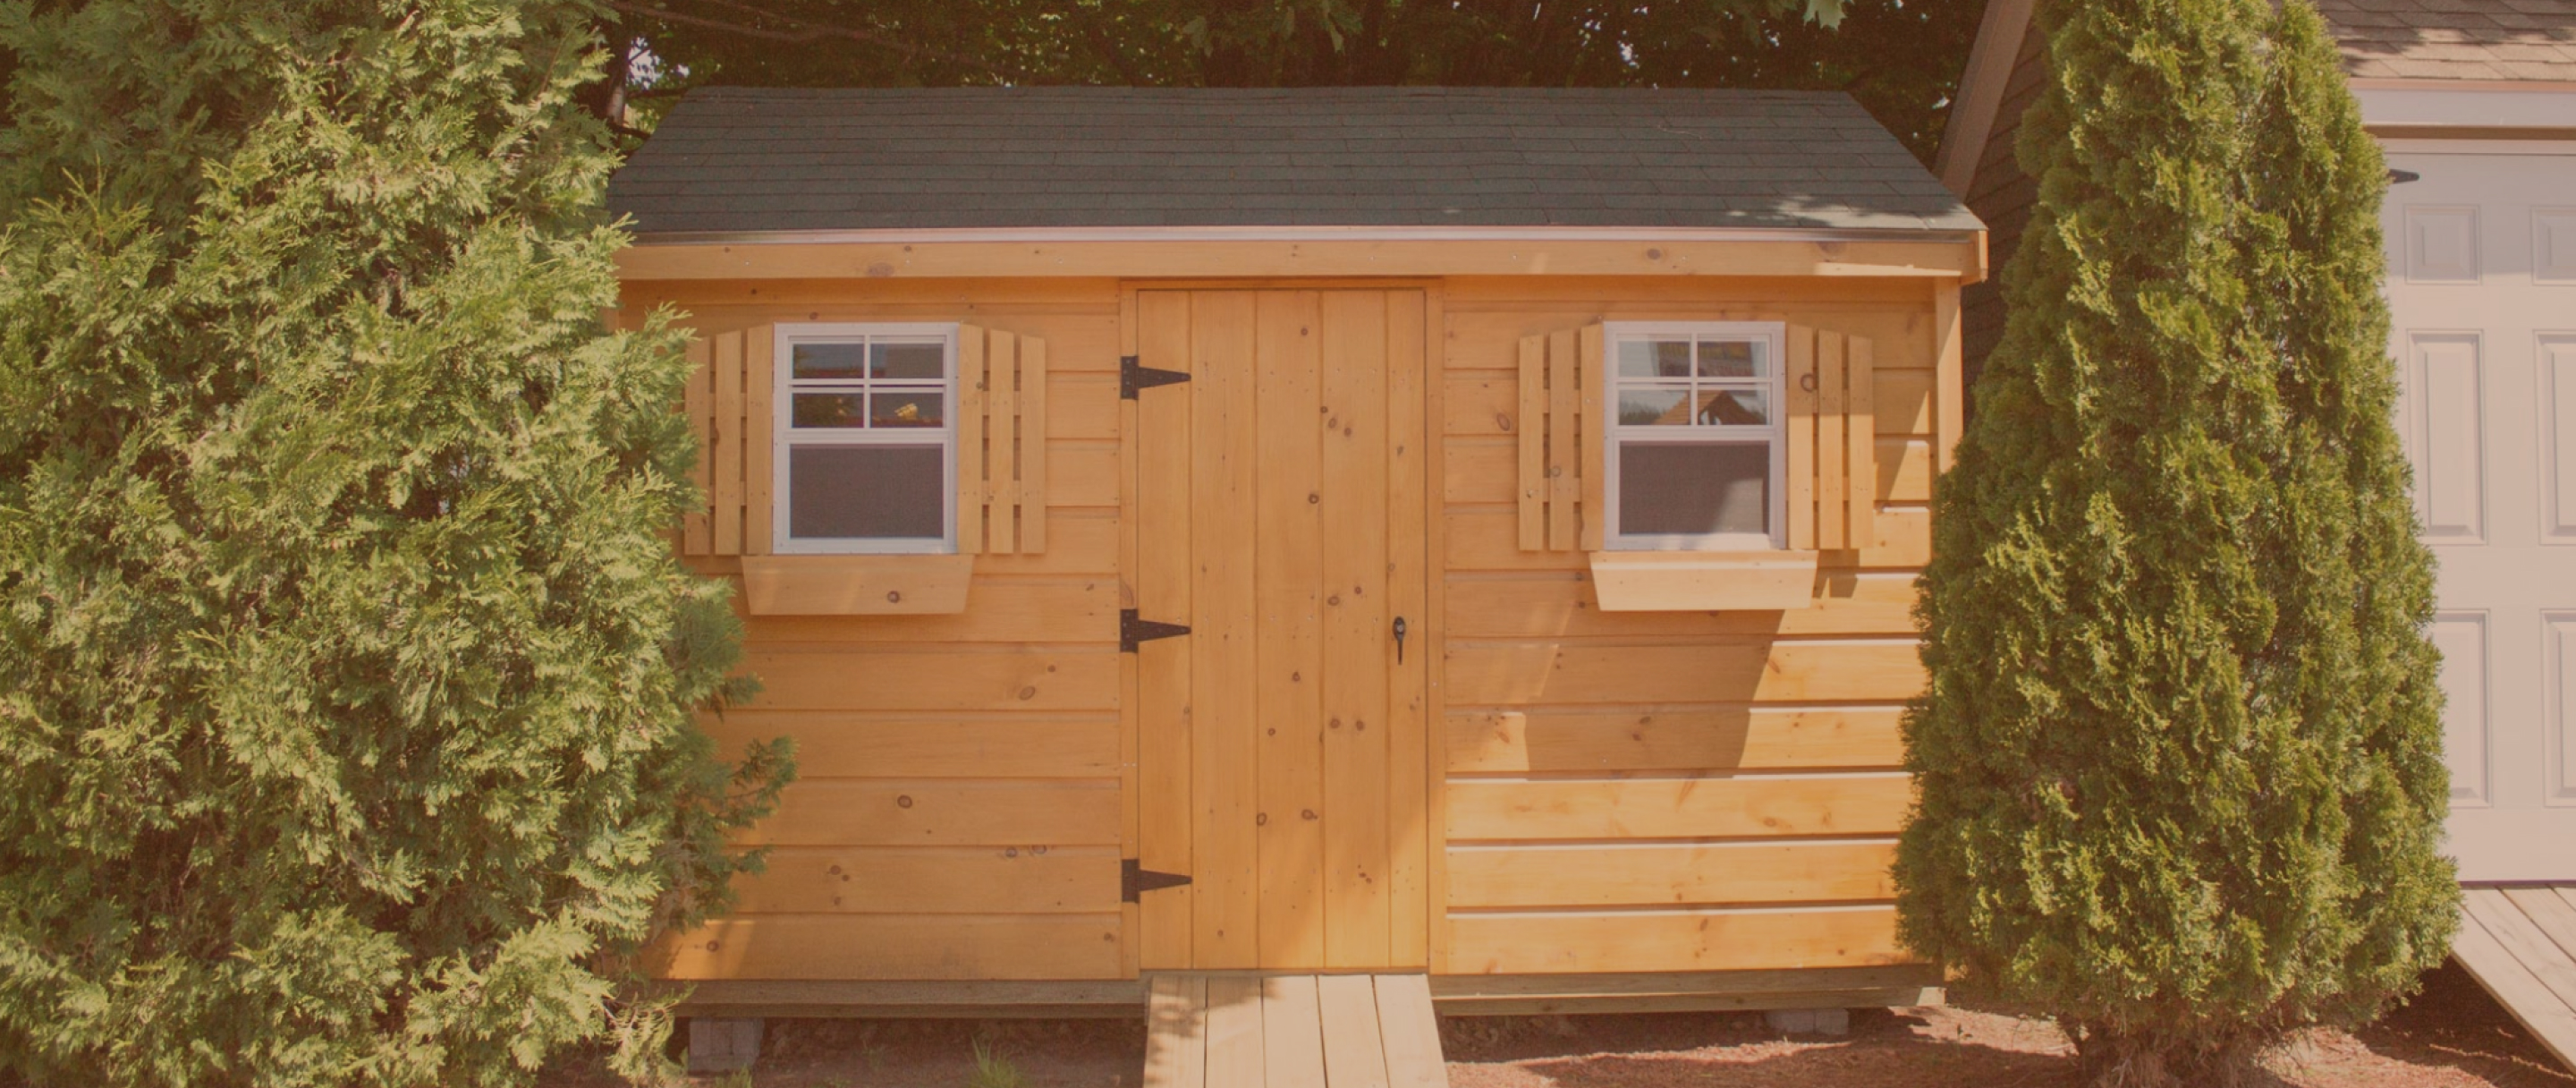 Photo of a shed, taken near our Portsmouth, NH marketing agency